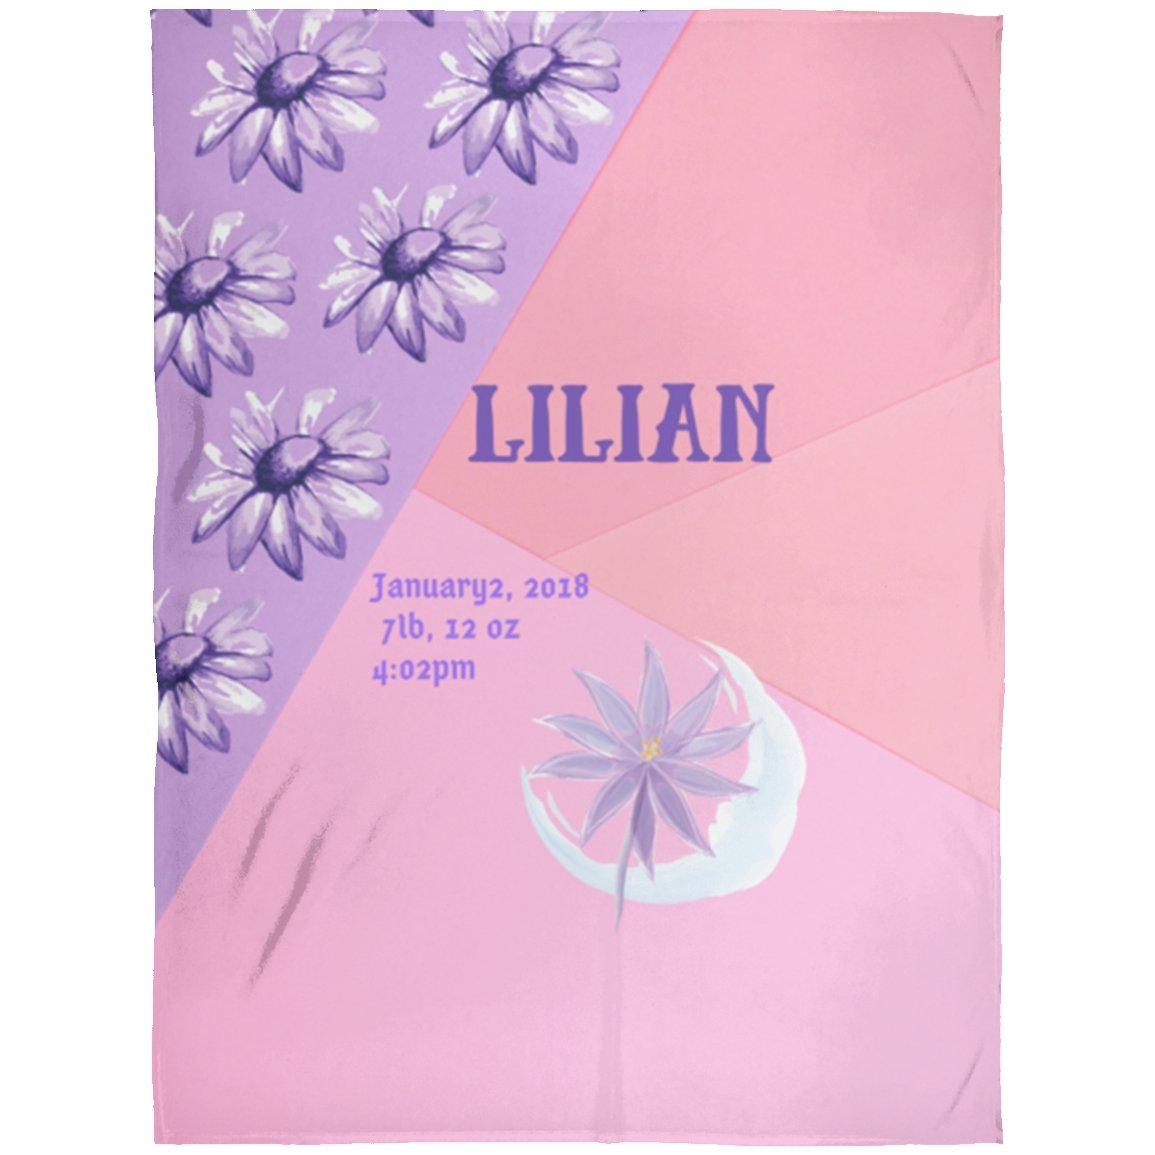 Blankets Pink Purple - Premium Arctic Fleece Blanket - Personalizable - ZERO TO THREE CLUB Blankets